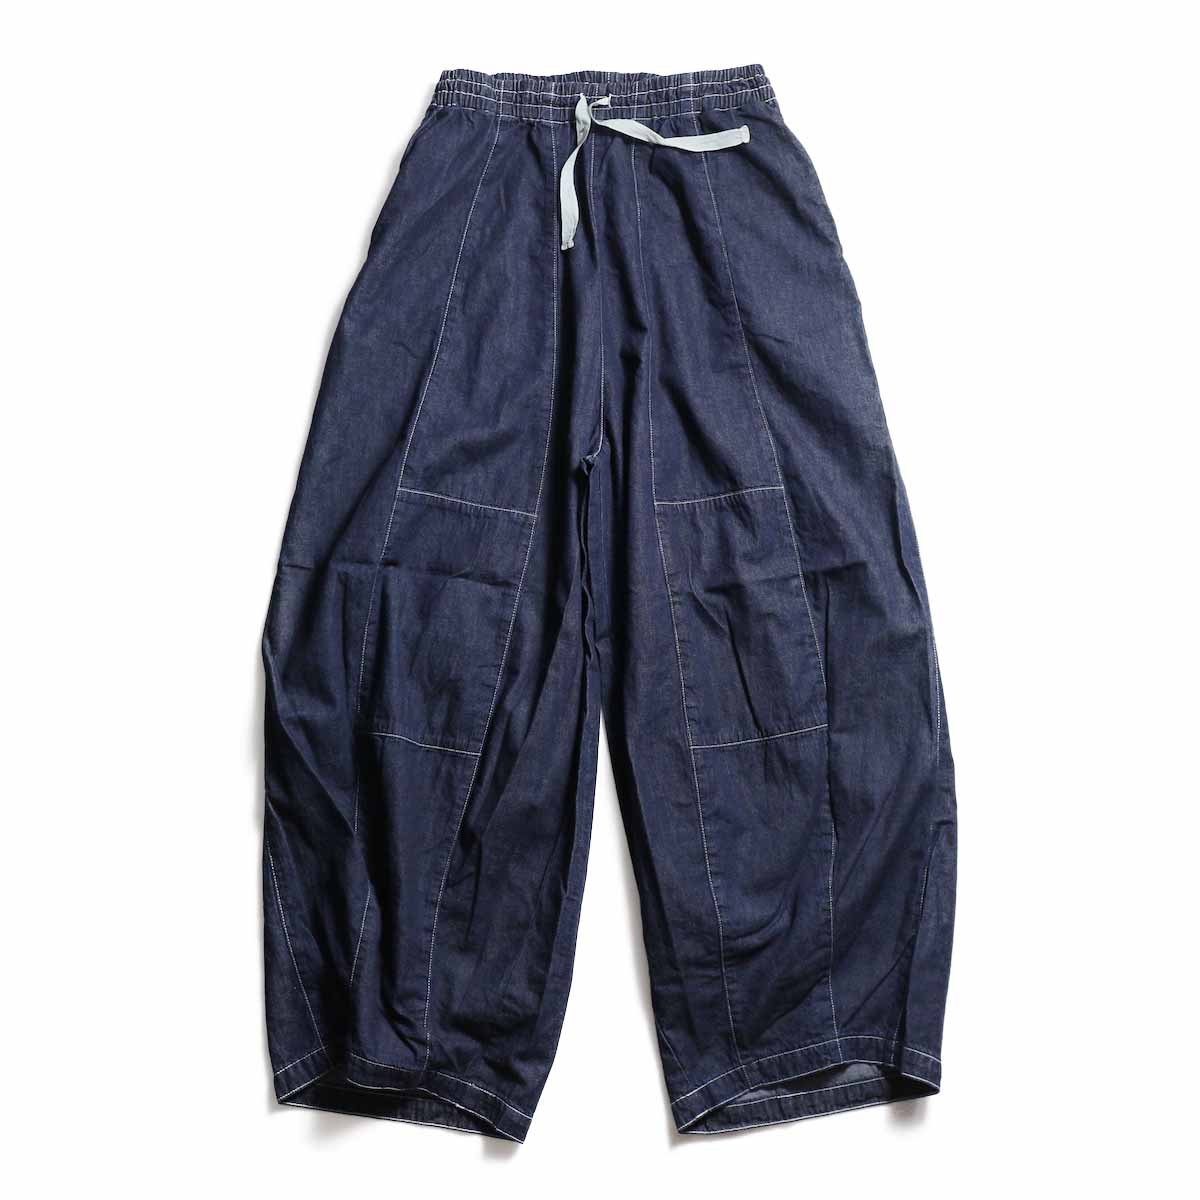 Needles / H.D. Pant -6oz Denim (Indigo)